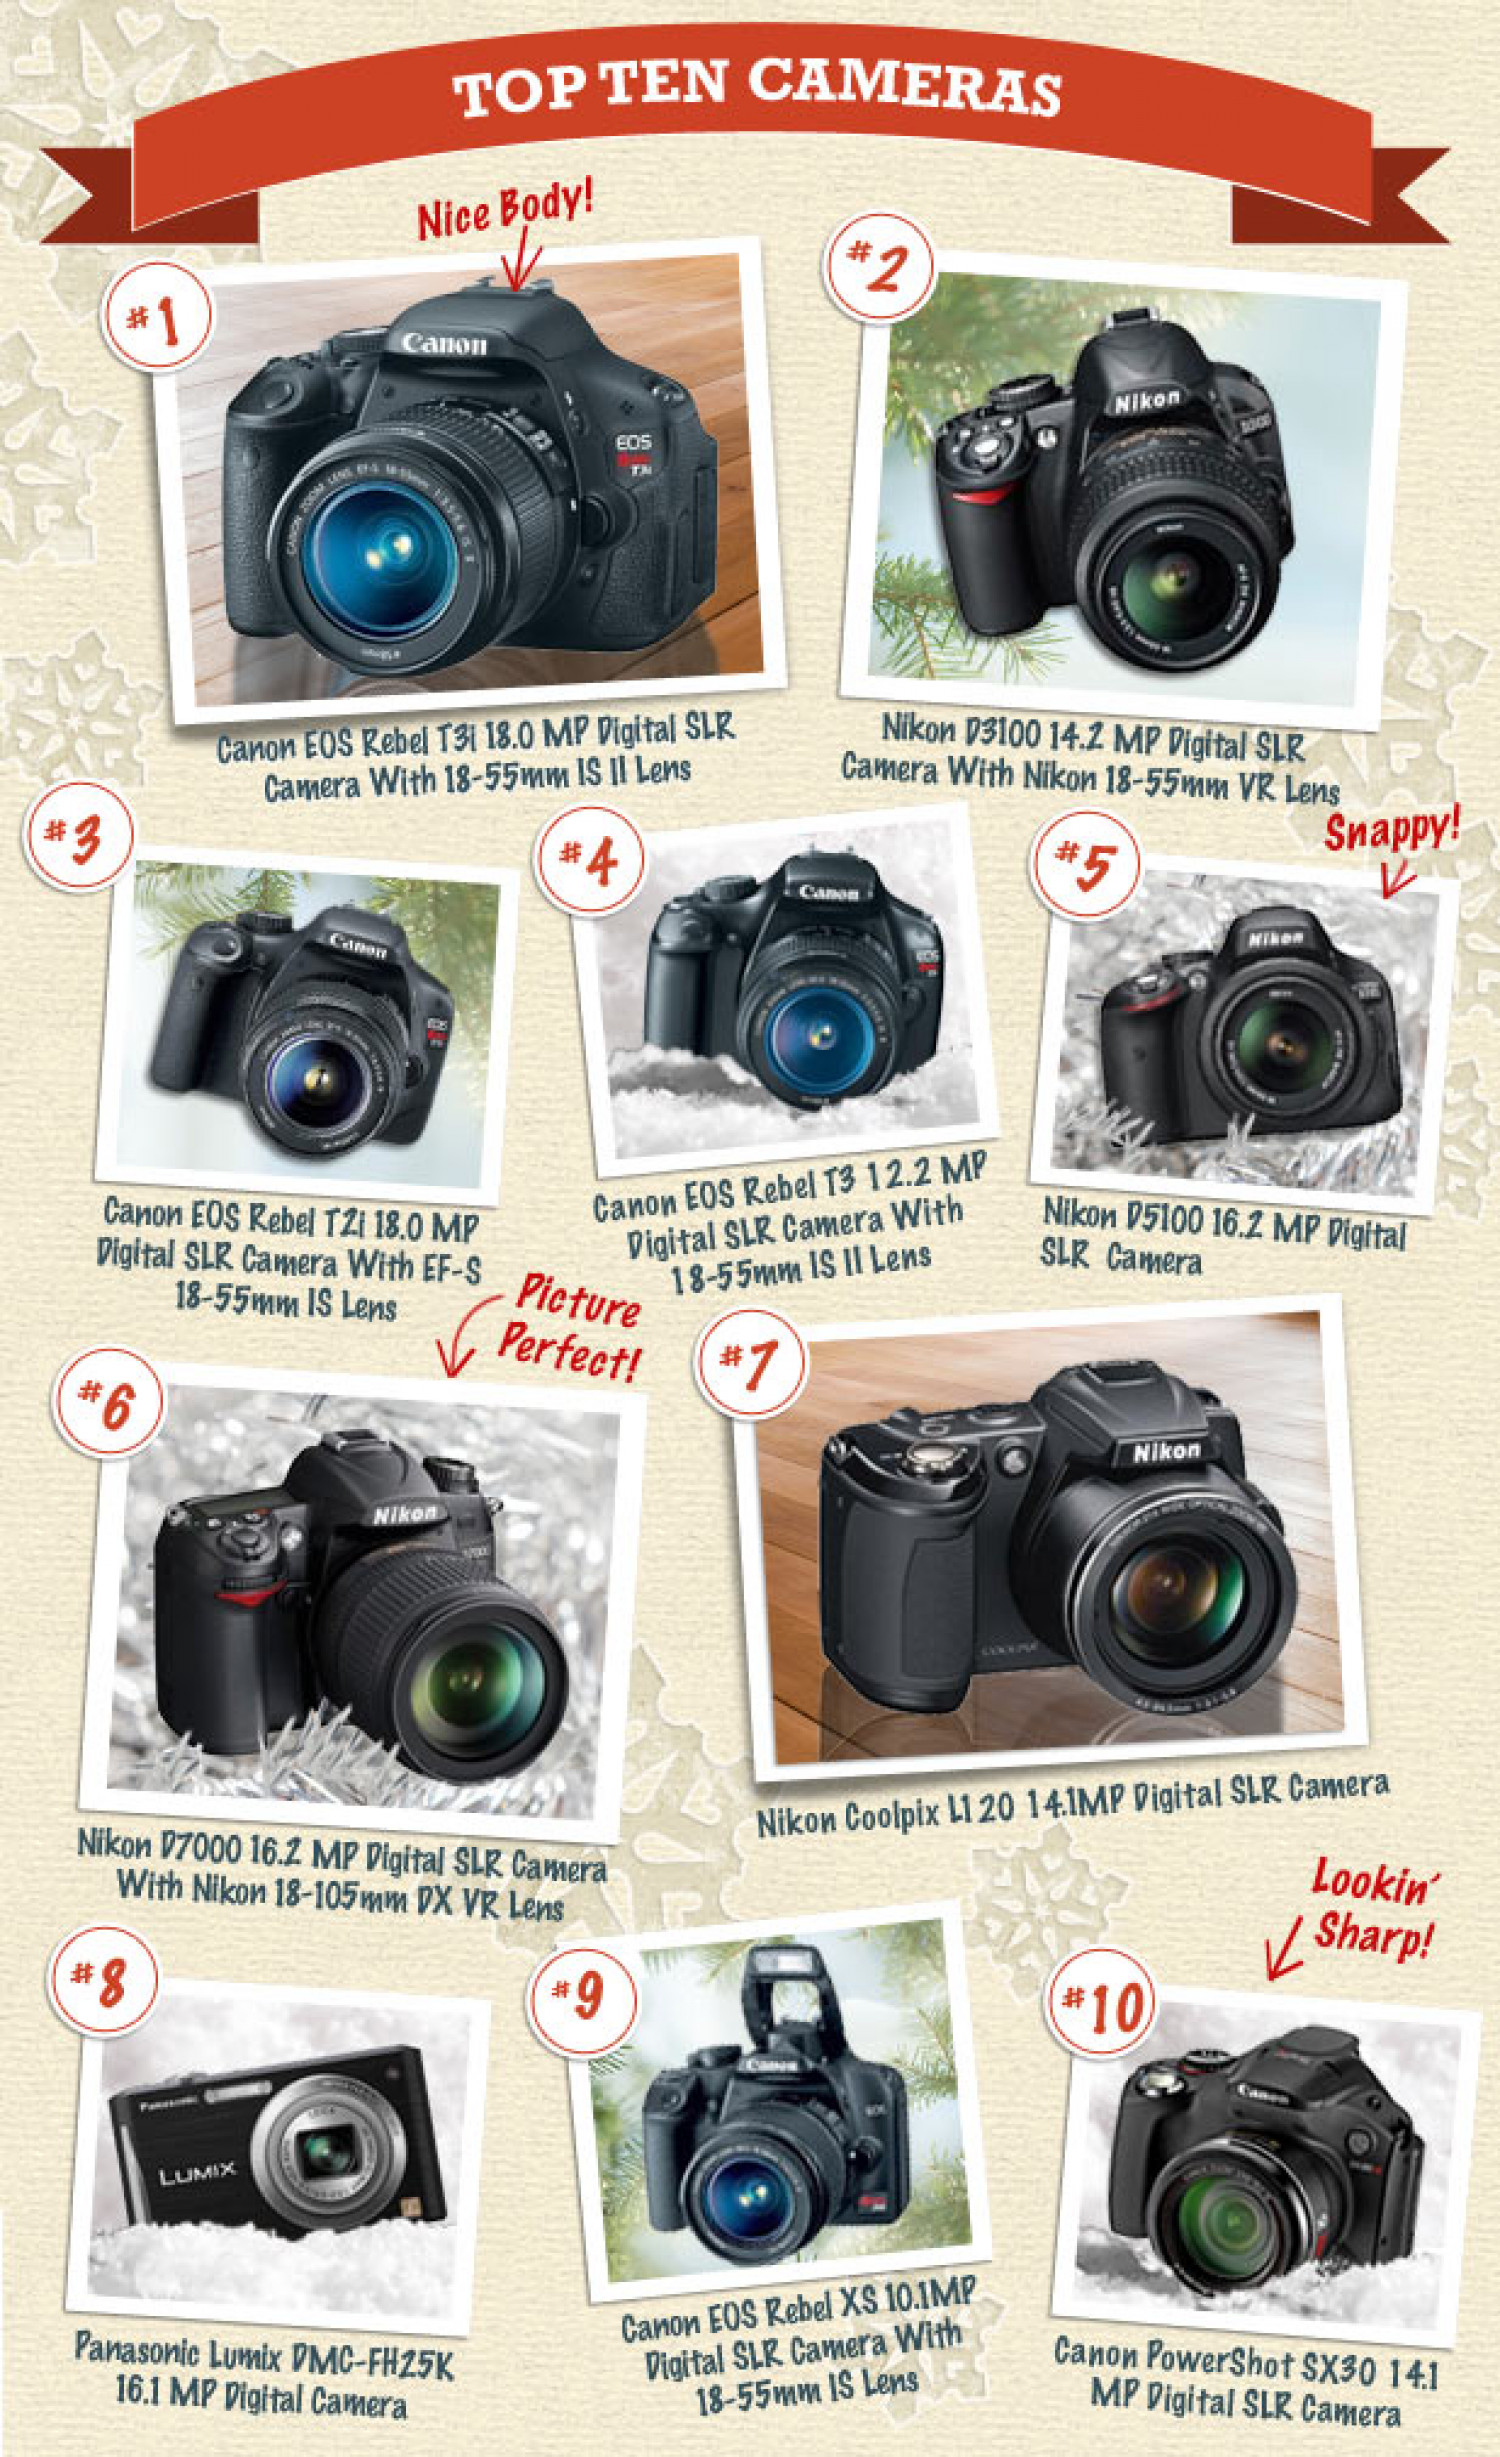 Nextag Shopping Report - Top 10 Cameras Infographic